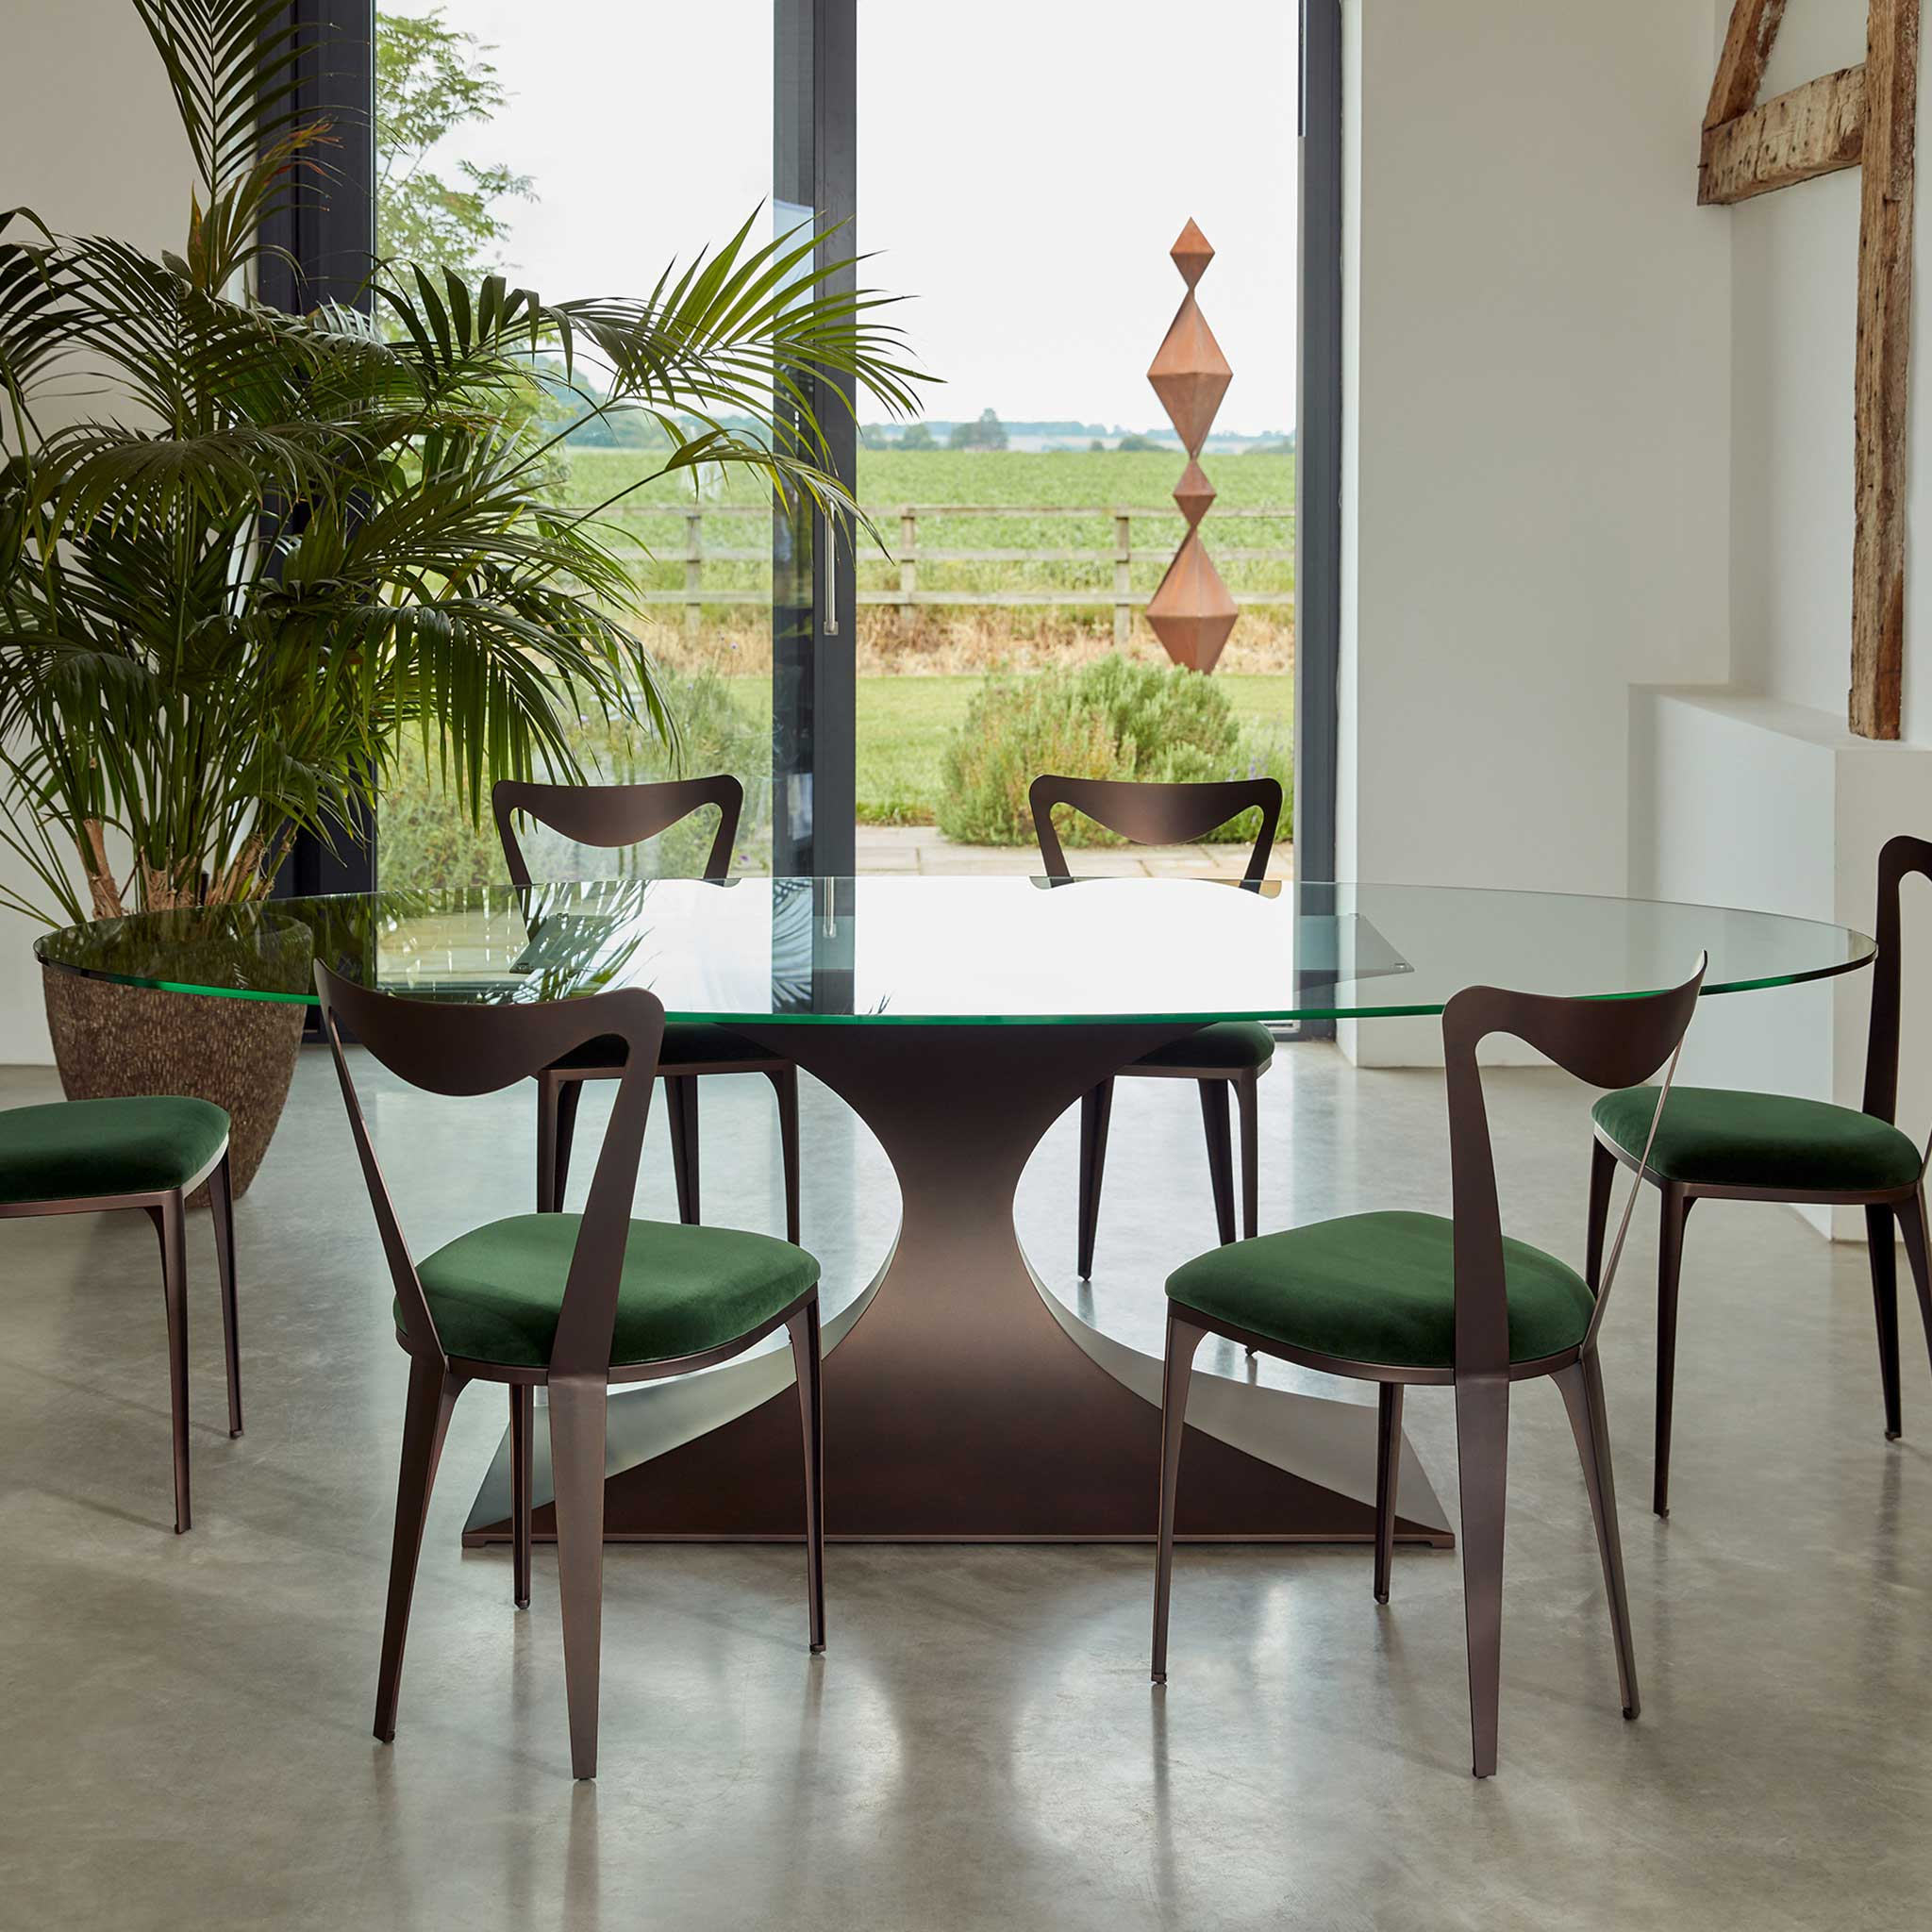 Capricorn-Dining-Table-BR-with-Tiff-chairs